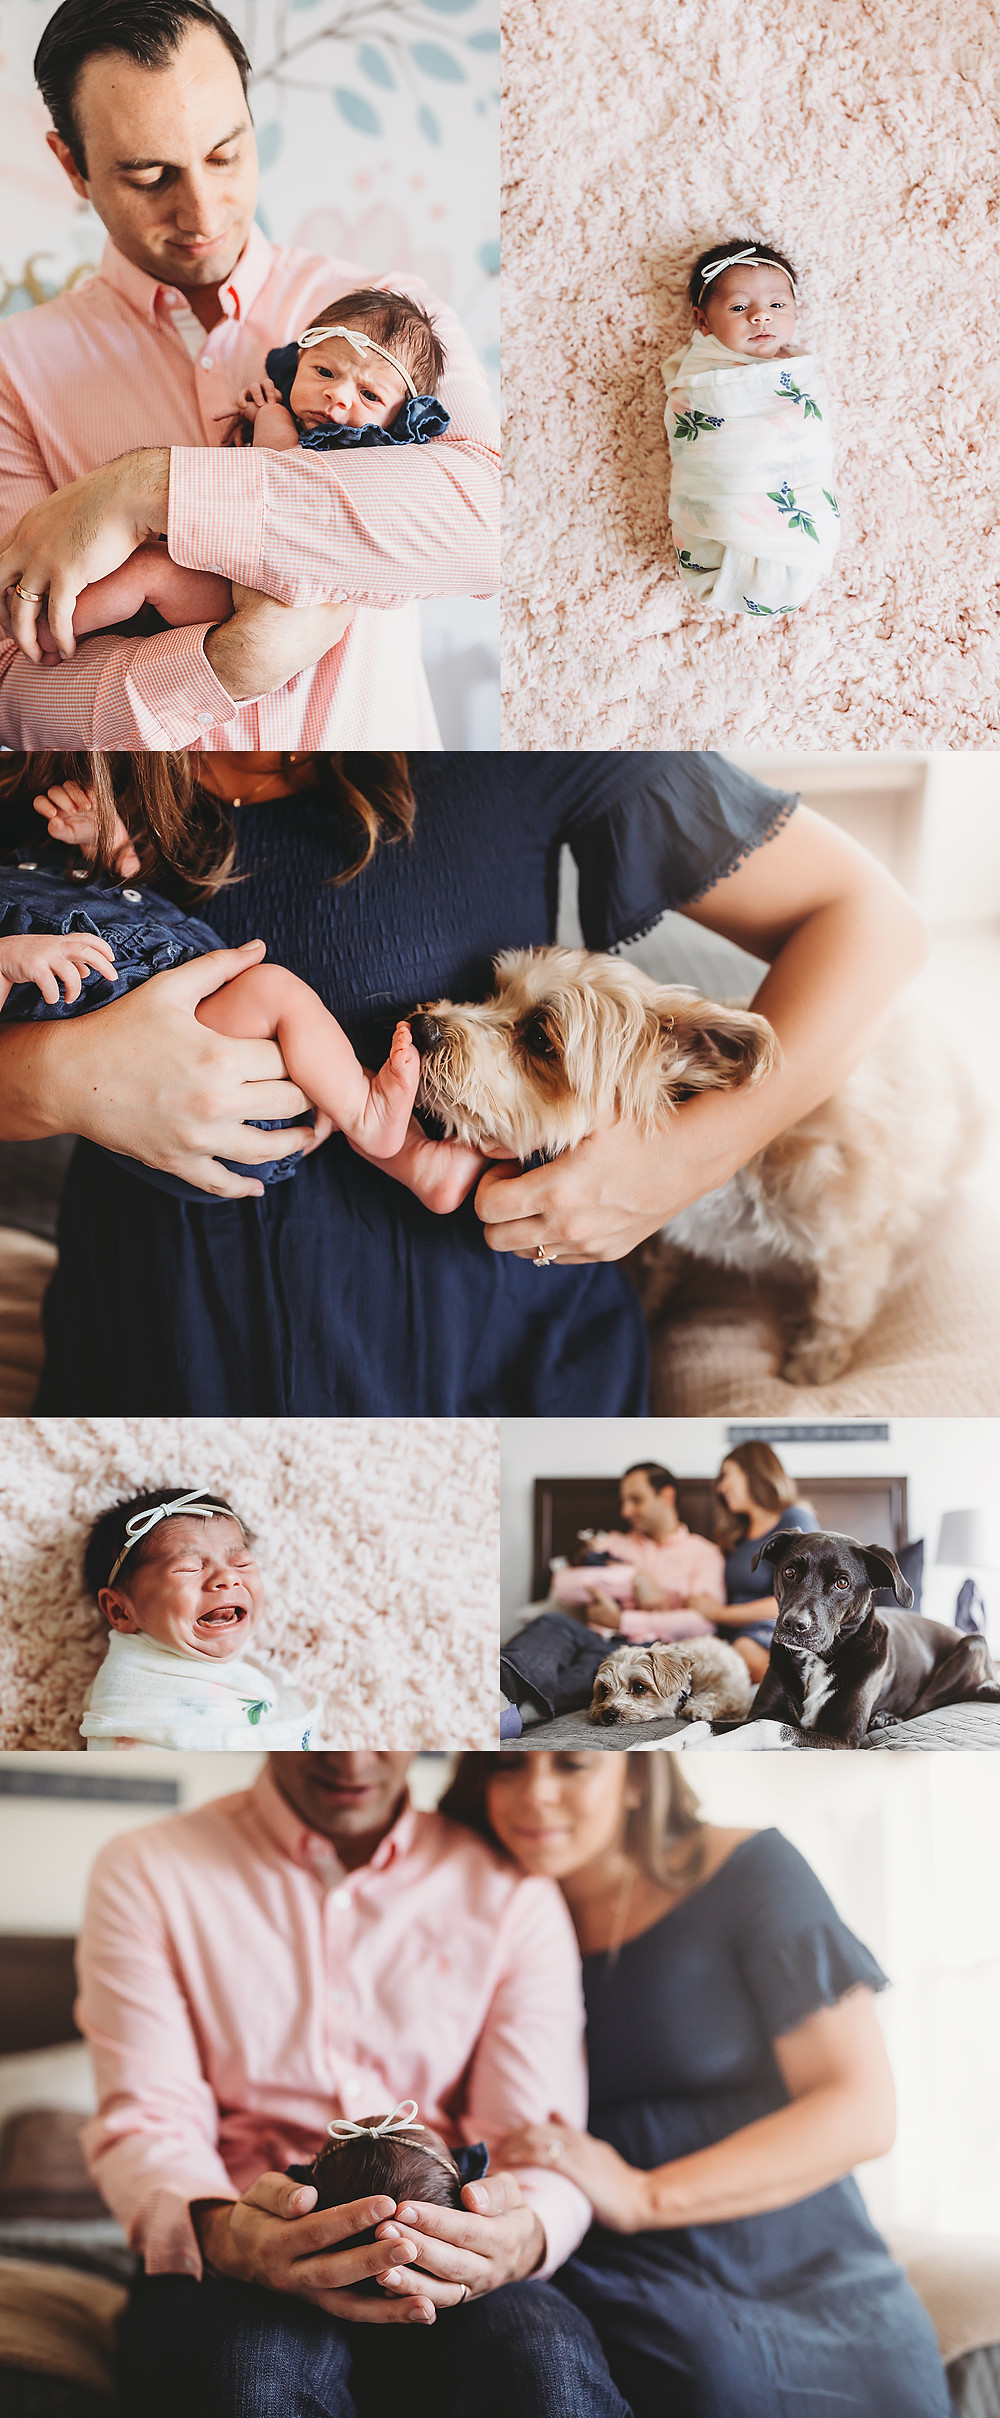 Indianapolis Indiana Newborn Lifestyle Photographer, Alex Morris Design